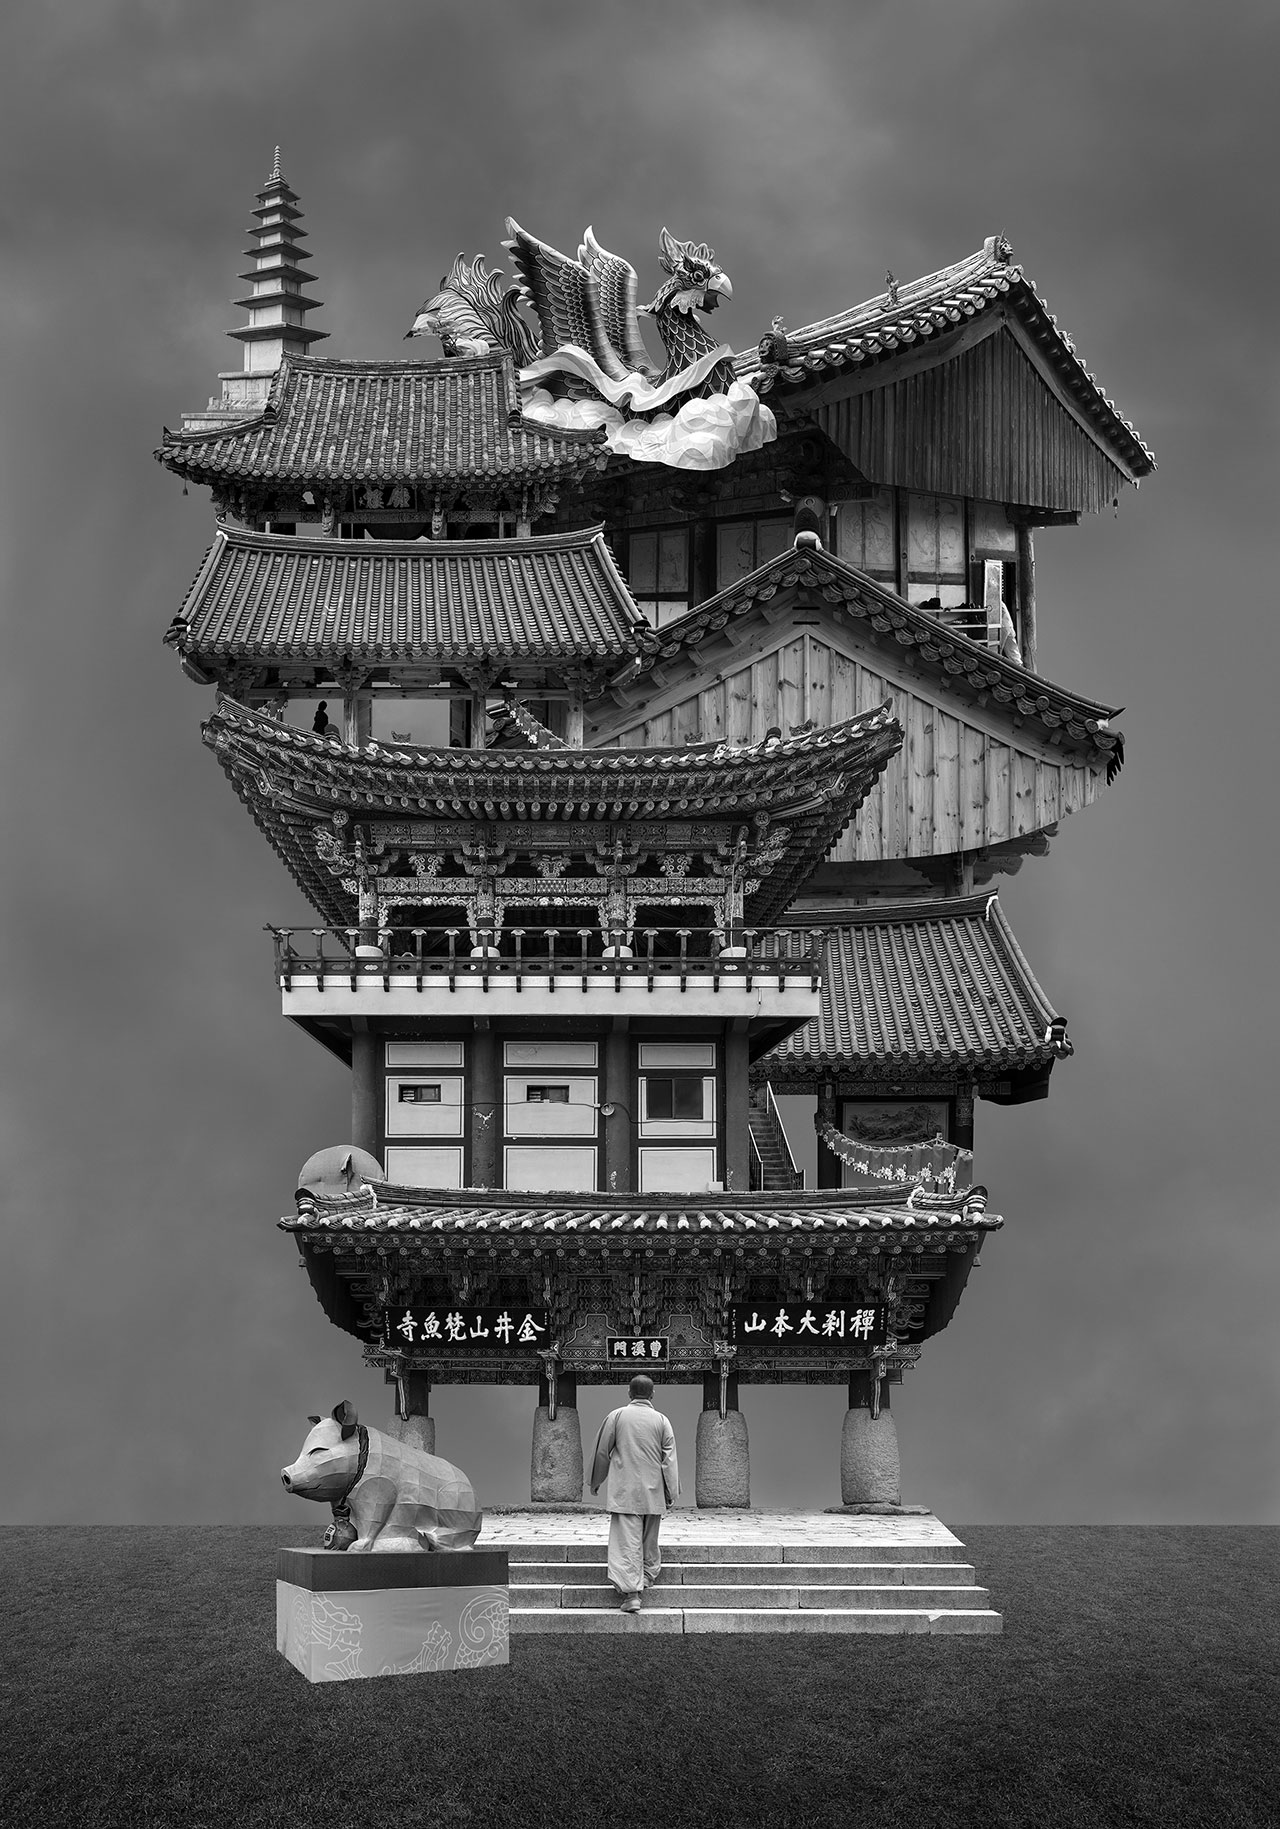 Beomsik Won,Archisculpture 020, 2014. Archival pigment print, 100x70 or 171x120cm.